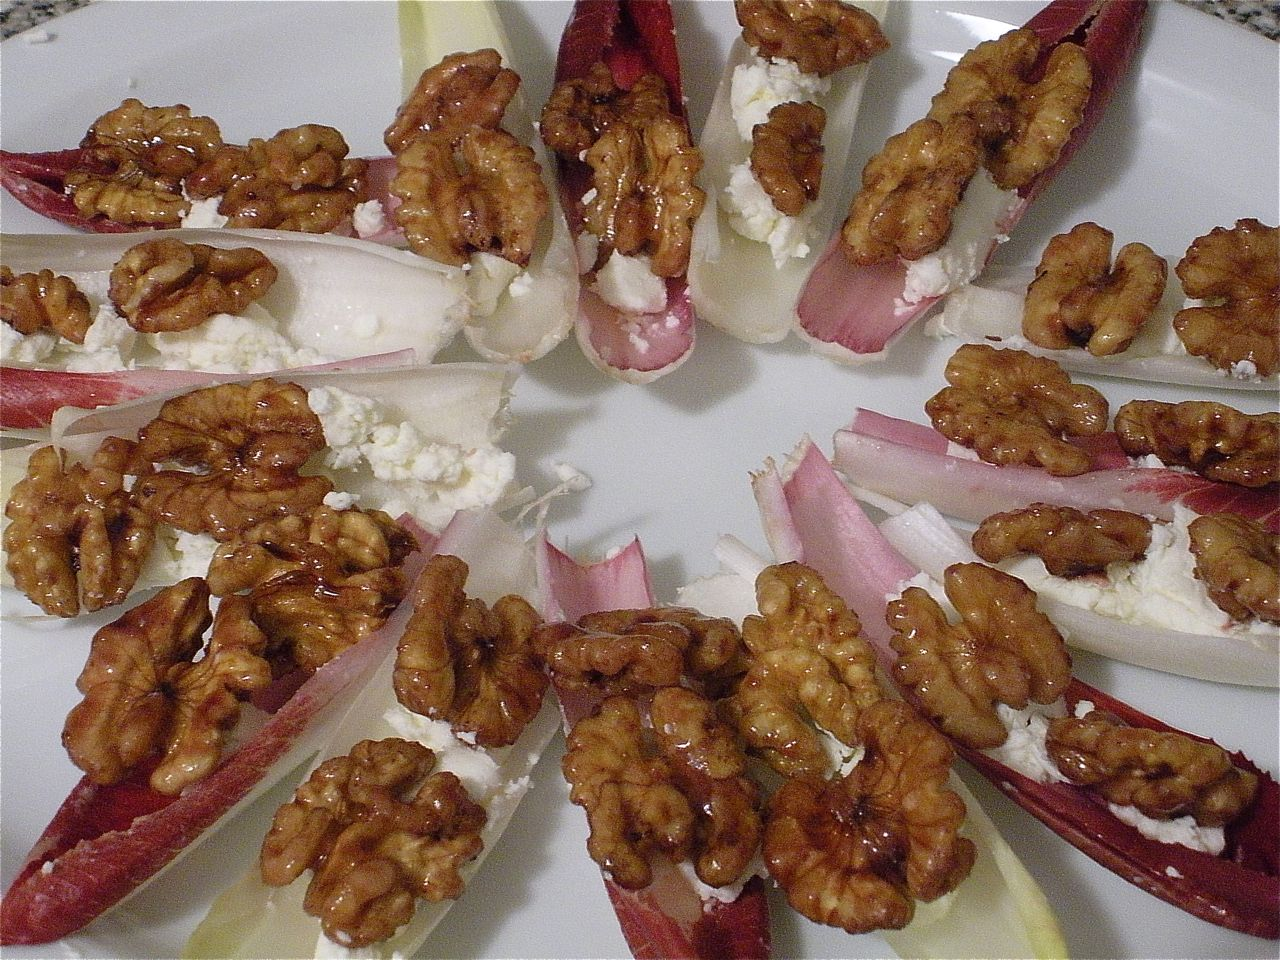 Port Glazed Walnuts, Goat Cheese and Endive